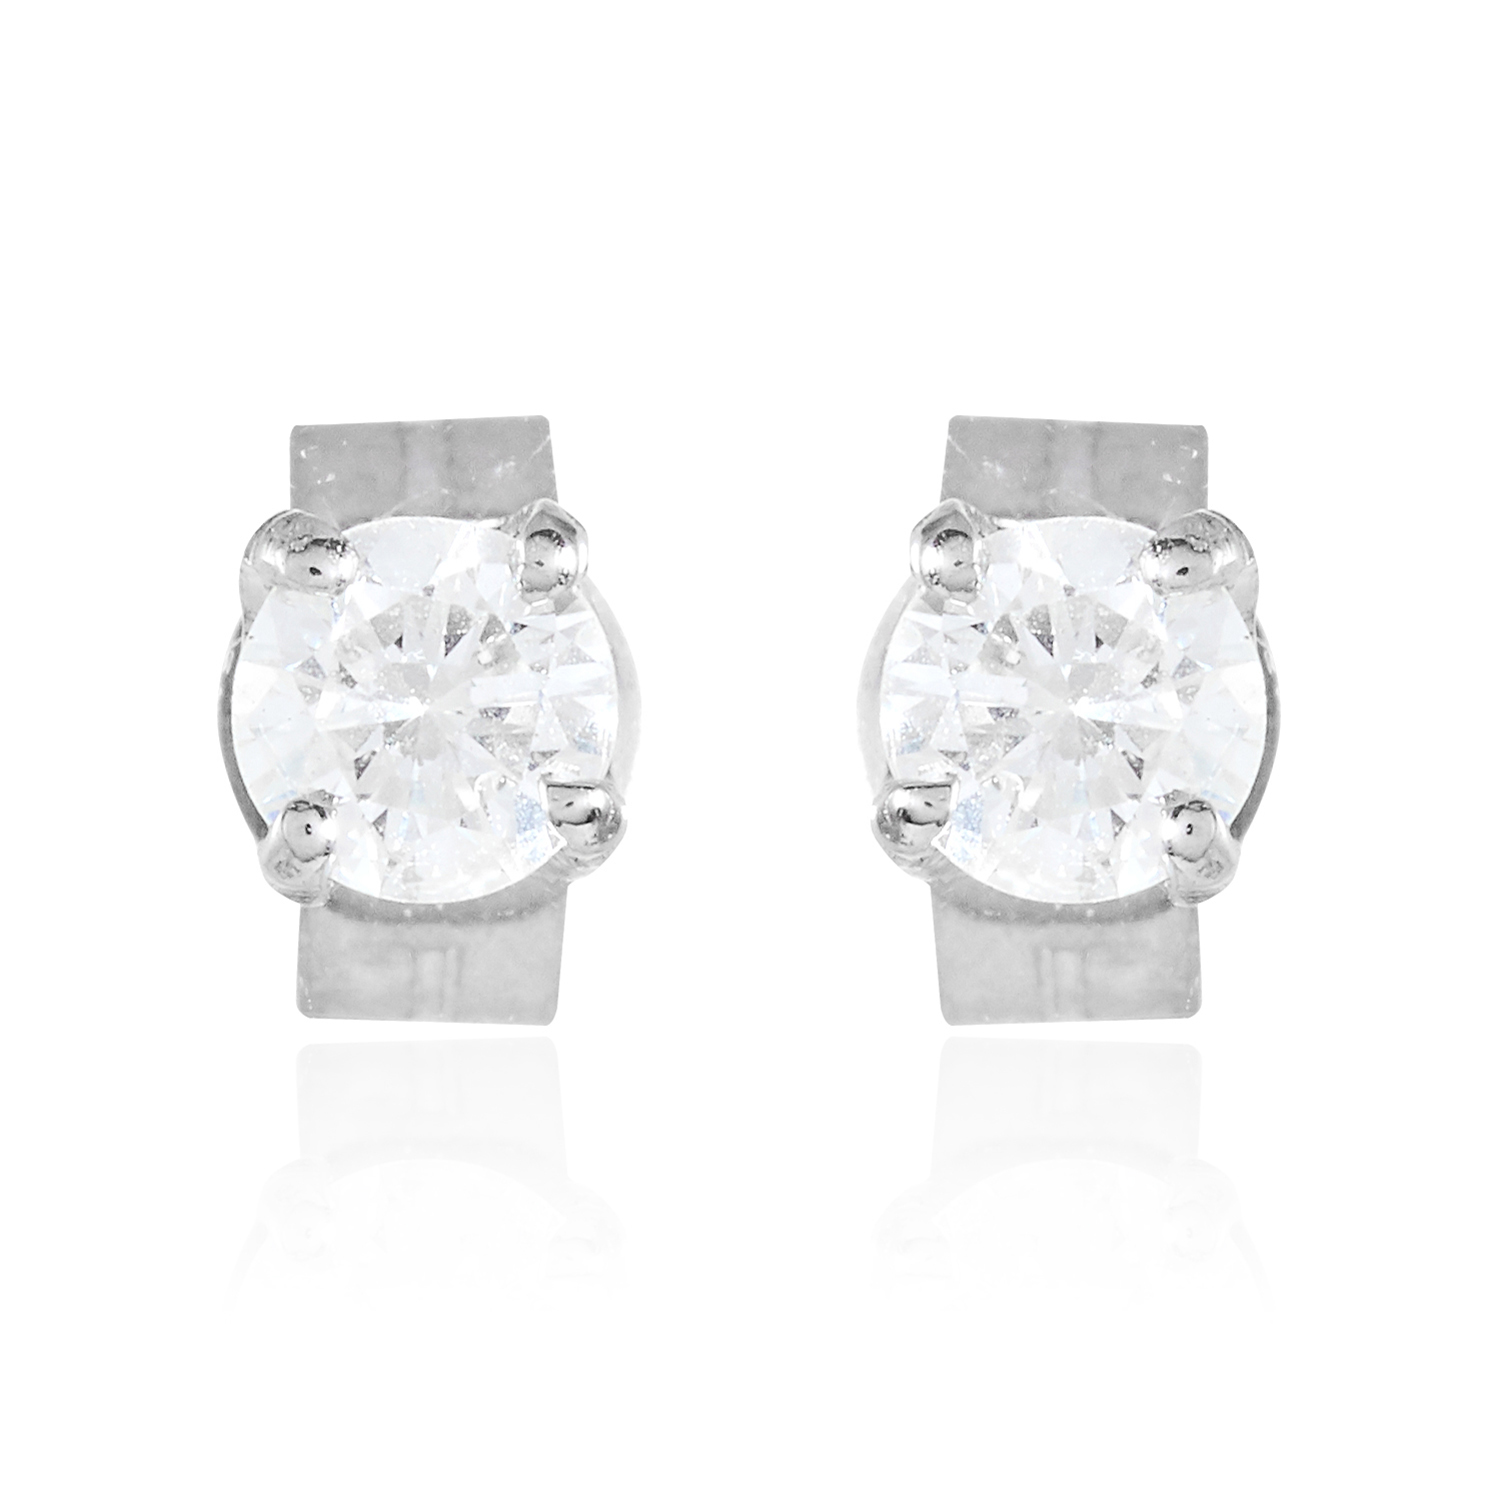 Los 17 - A PAIR OF 0.32 CARAT DIAMOND EAR STUDS in 18ct white gold, each set with a round cut diamond